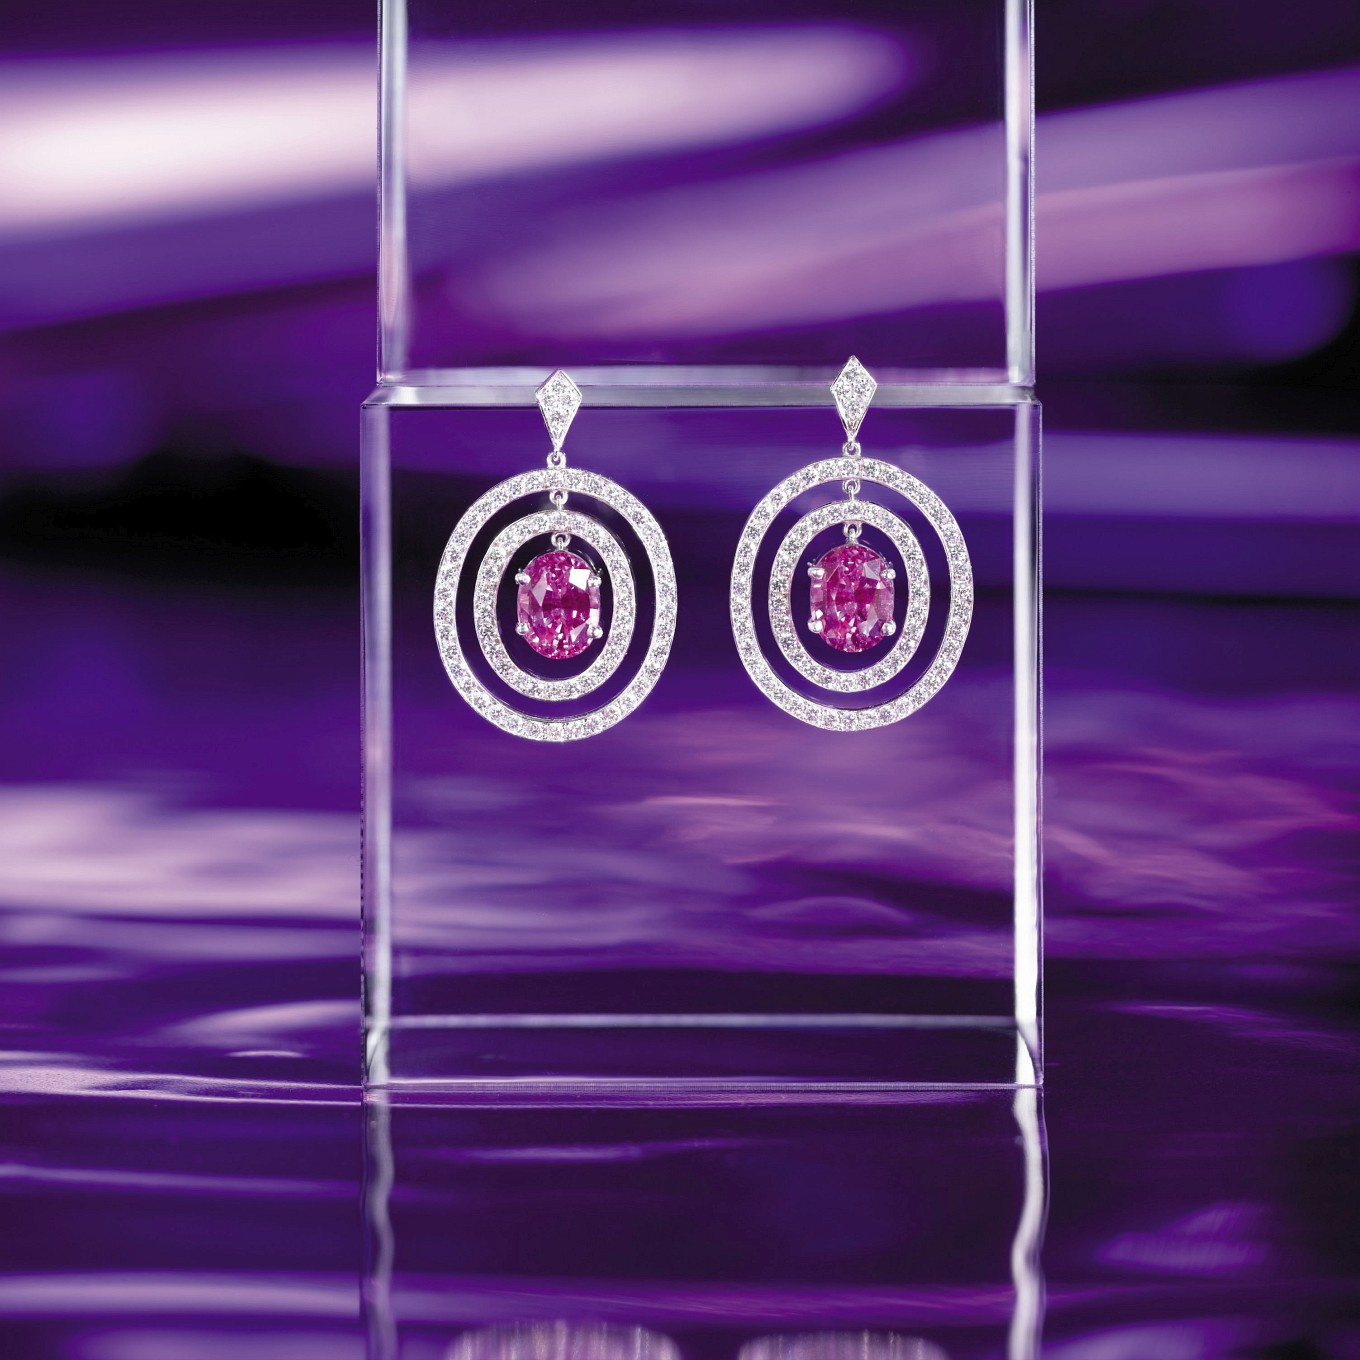 OVAL PINK SAPPHIRE & DIAMOND 'FRAME' EARRINGS